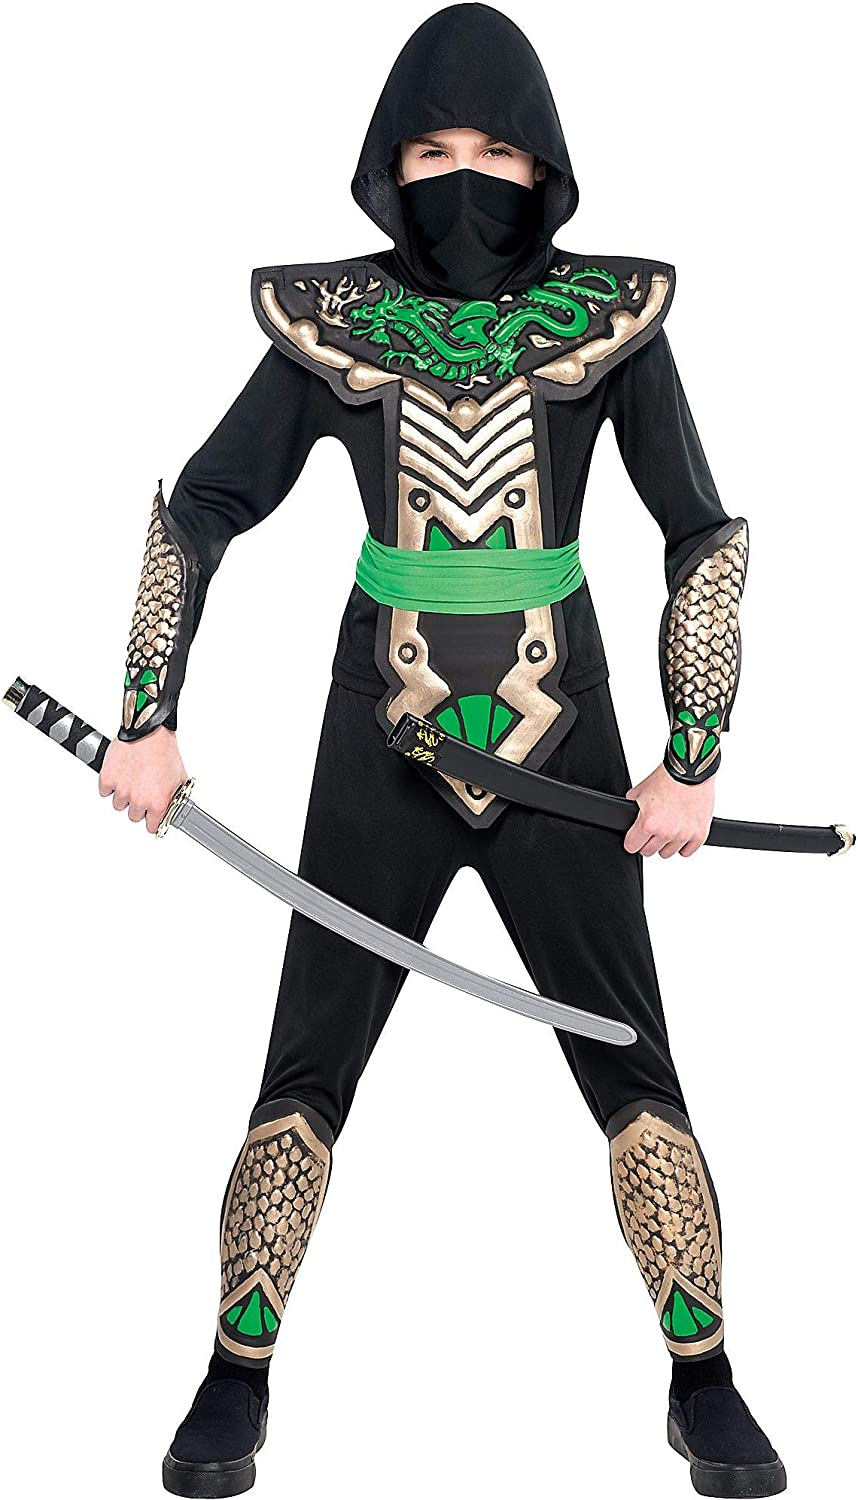 AMSCAN Ninja Dragon Halloween Costume for Boys, Medium, with Included Accessories